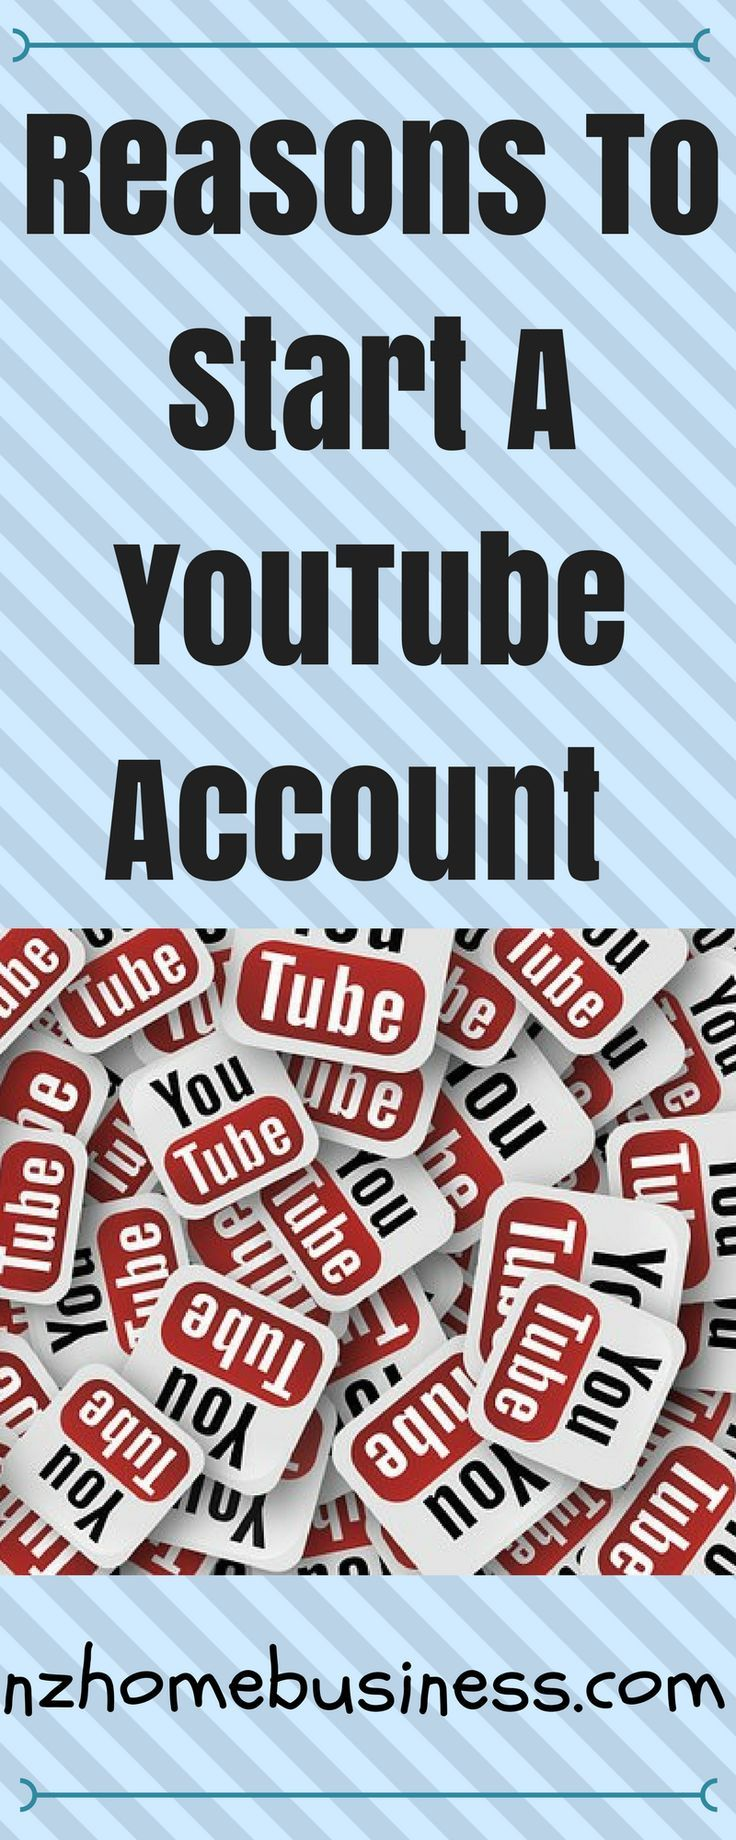 So, YouTube………  How often do you visit ? Everyone is on YouTube. It's full of information, whether you are looking for fitness ideas, trying to build ( anything ) , or if you want to watch your favorite musicians. You name it, it's on YouTube.